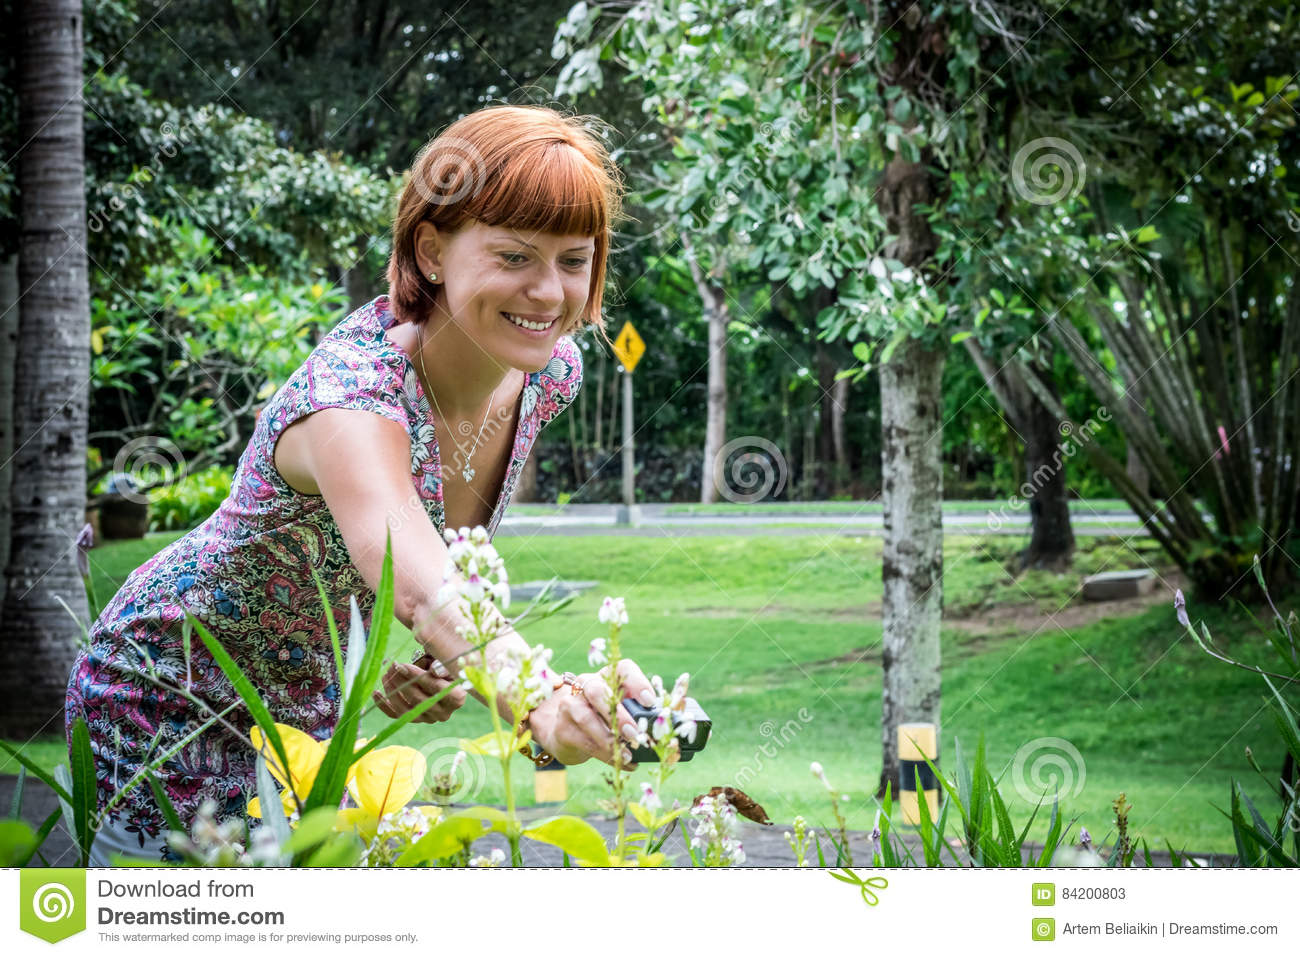 Young woman with action camera shooting butterfly in the plants. Nusa Dua park, tropical island Bali, Indonesia.